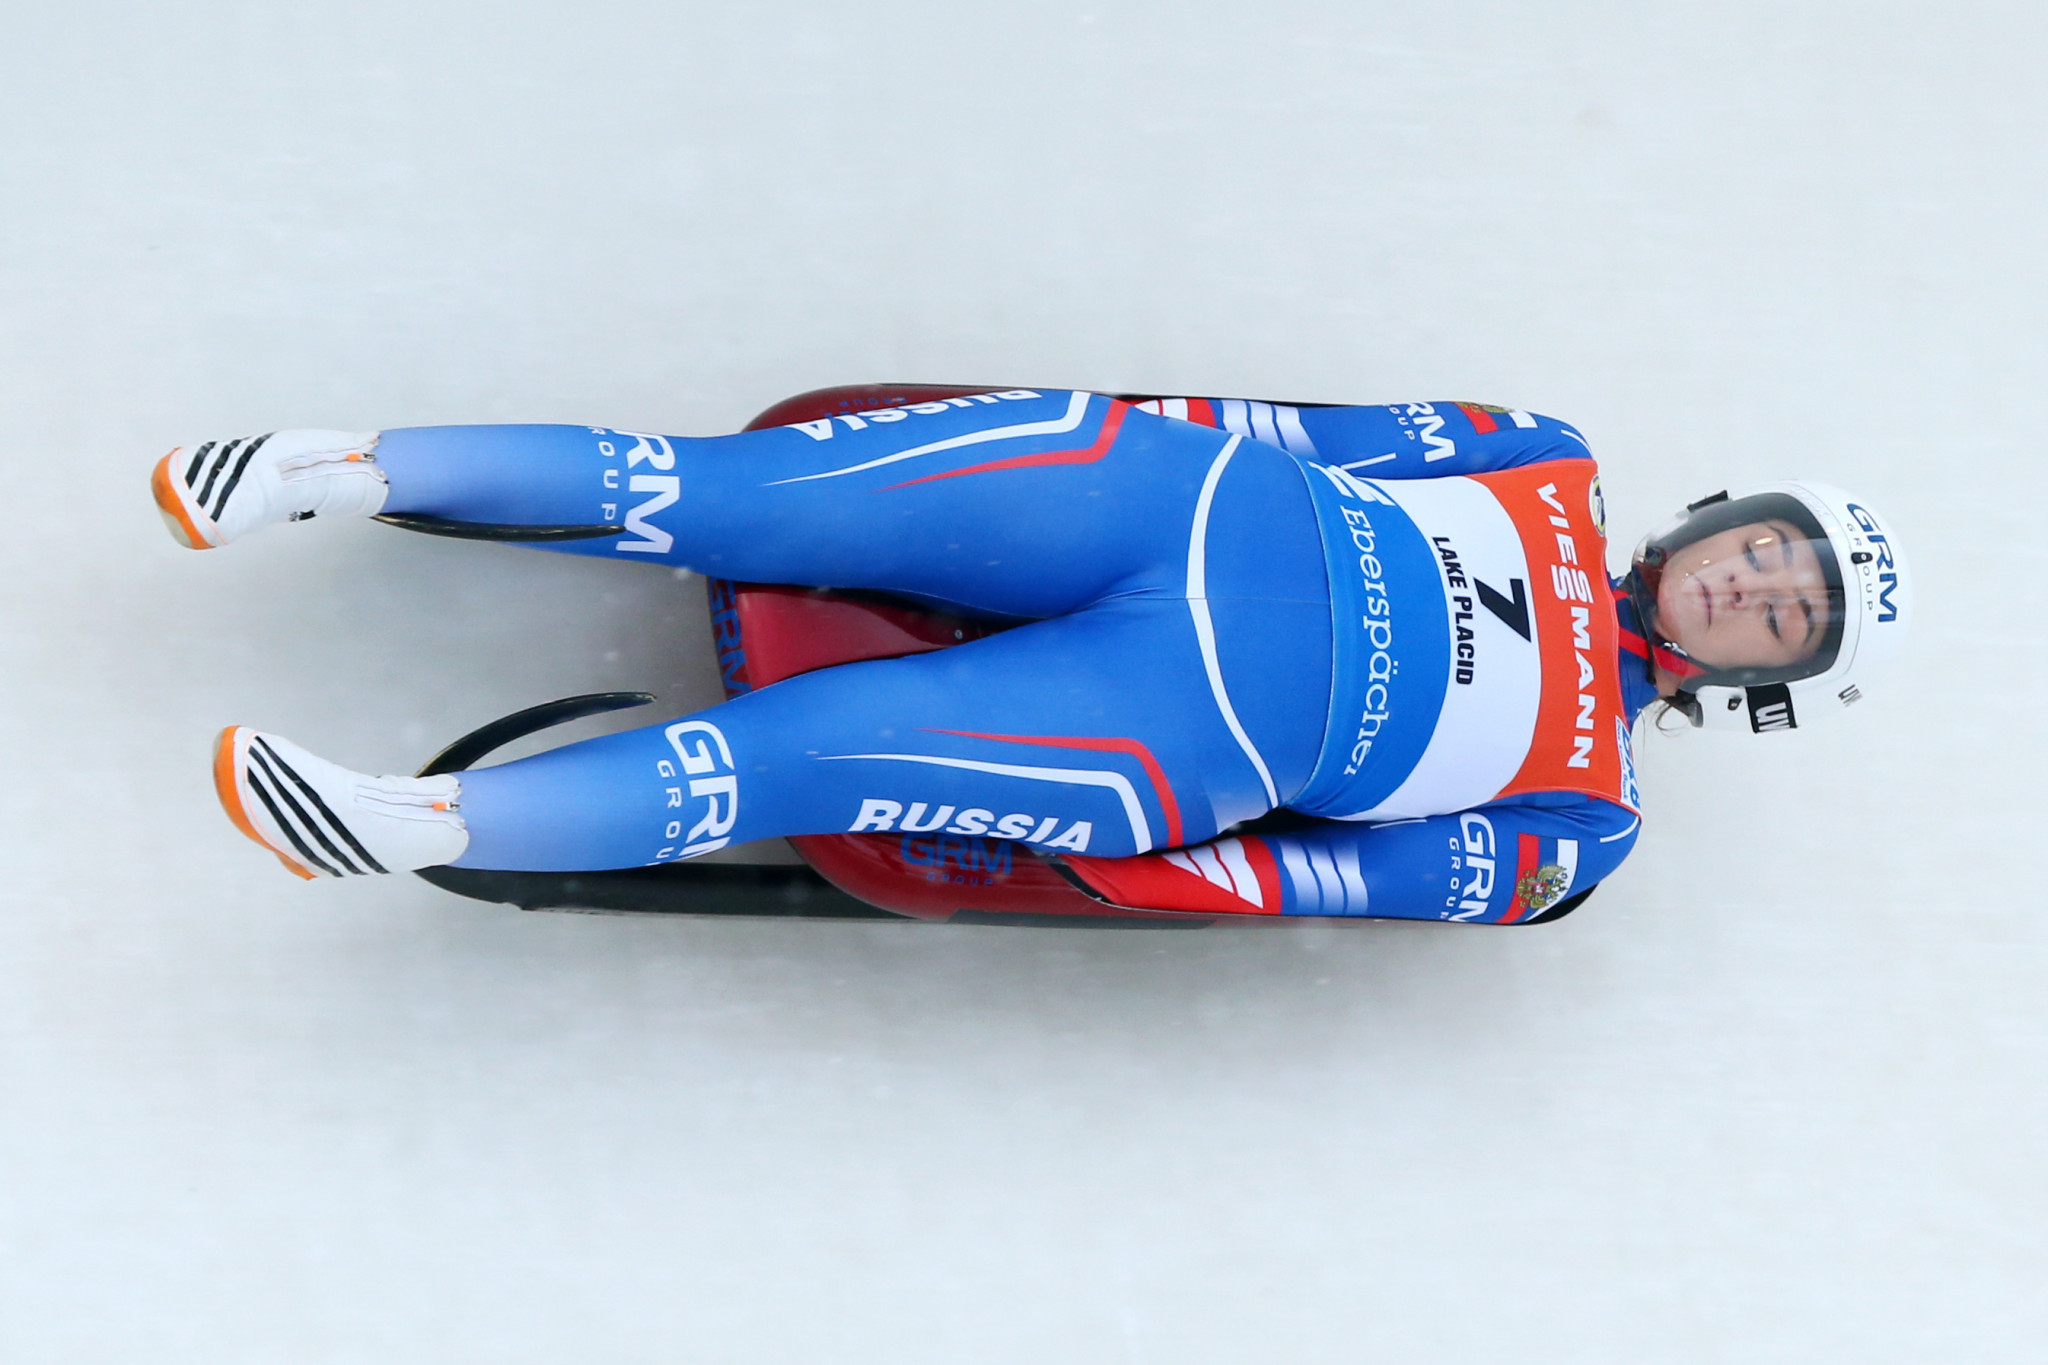 Katnikova wins women's singles to secure second title at Luge World Championships